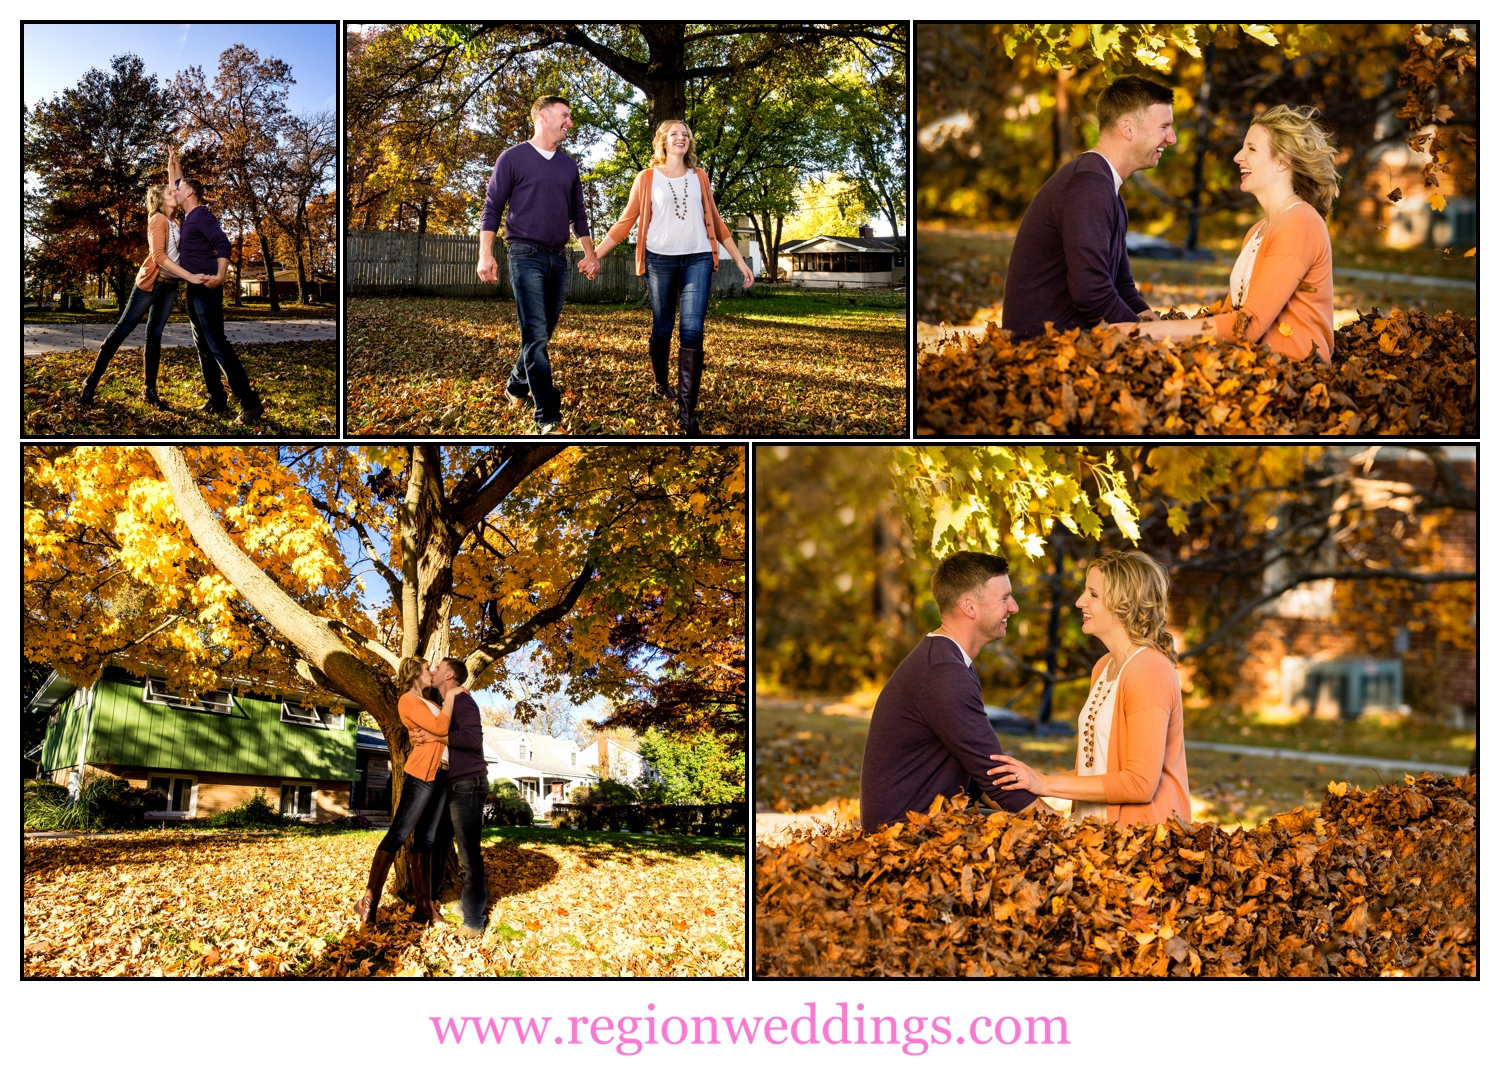 A collection of Fall engagement photo in a Crown Point neighborhood.